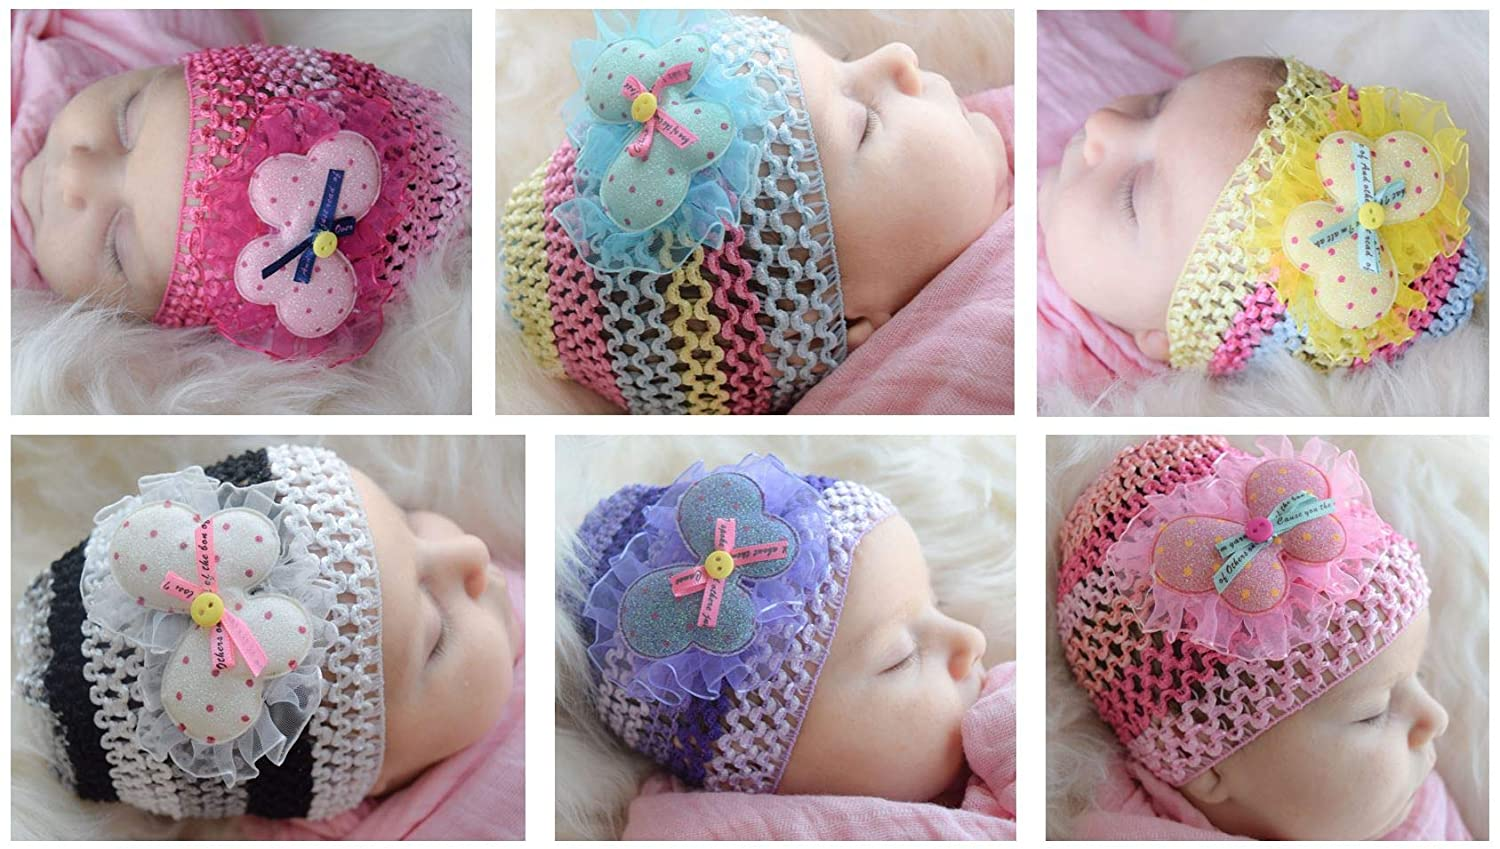 e9756f5b39f Amazon.com  Newborn Baby Girl Hats with Butterflies (6 Pack) Crochet Infant  Beanie Caps  Clothing